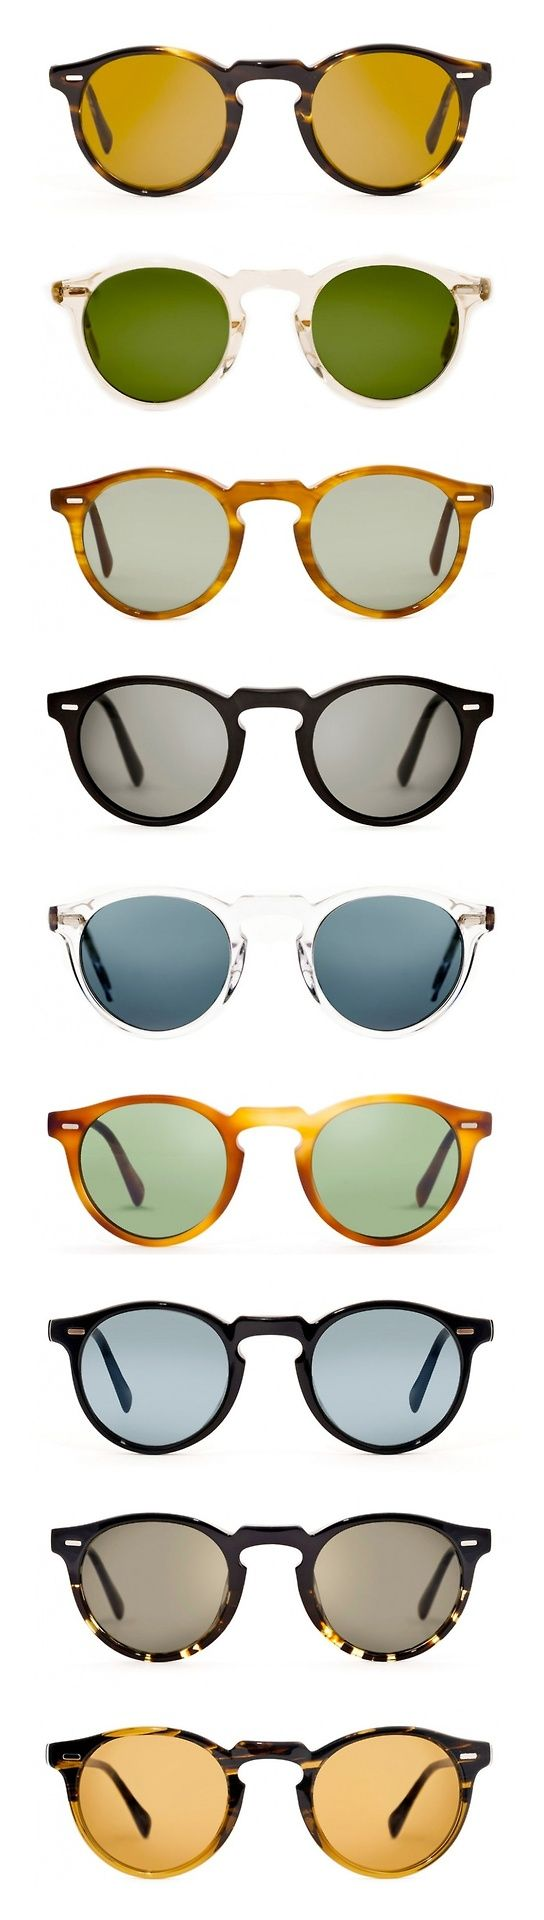 Gregory Peck sunglasses are the perfect shape for so many faces. Available exclusively at our Cambridge location!